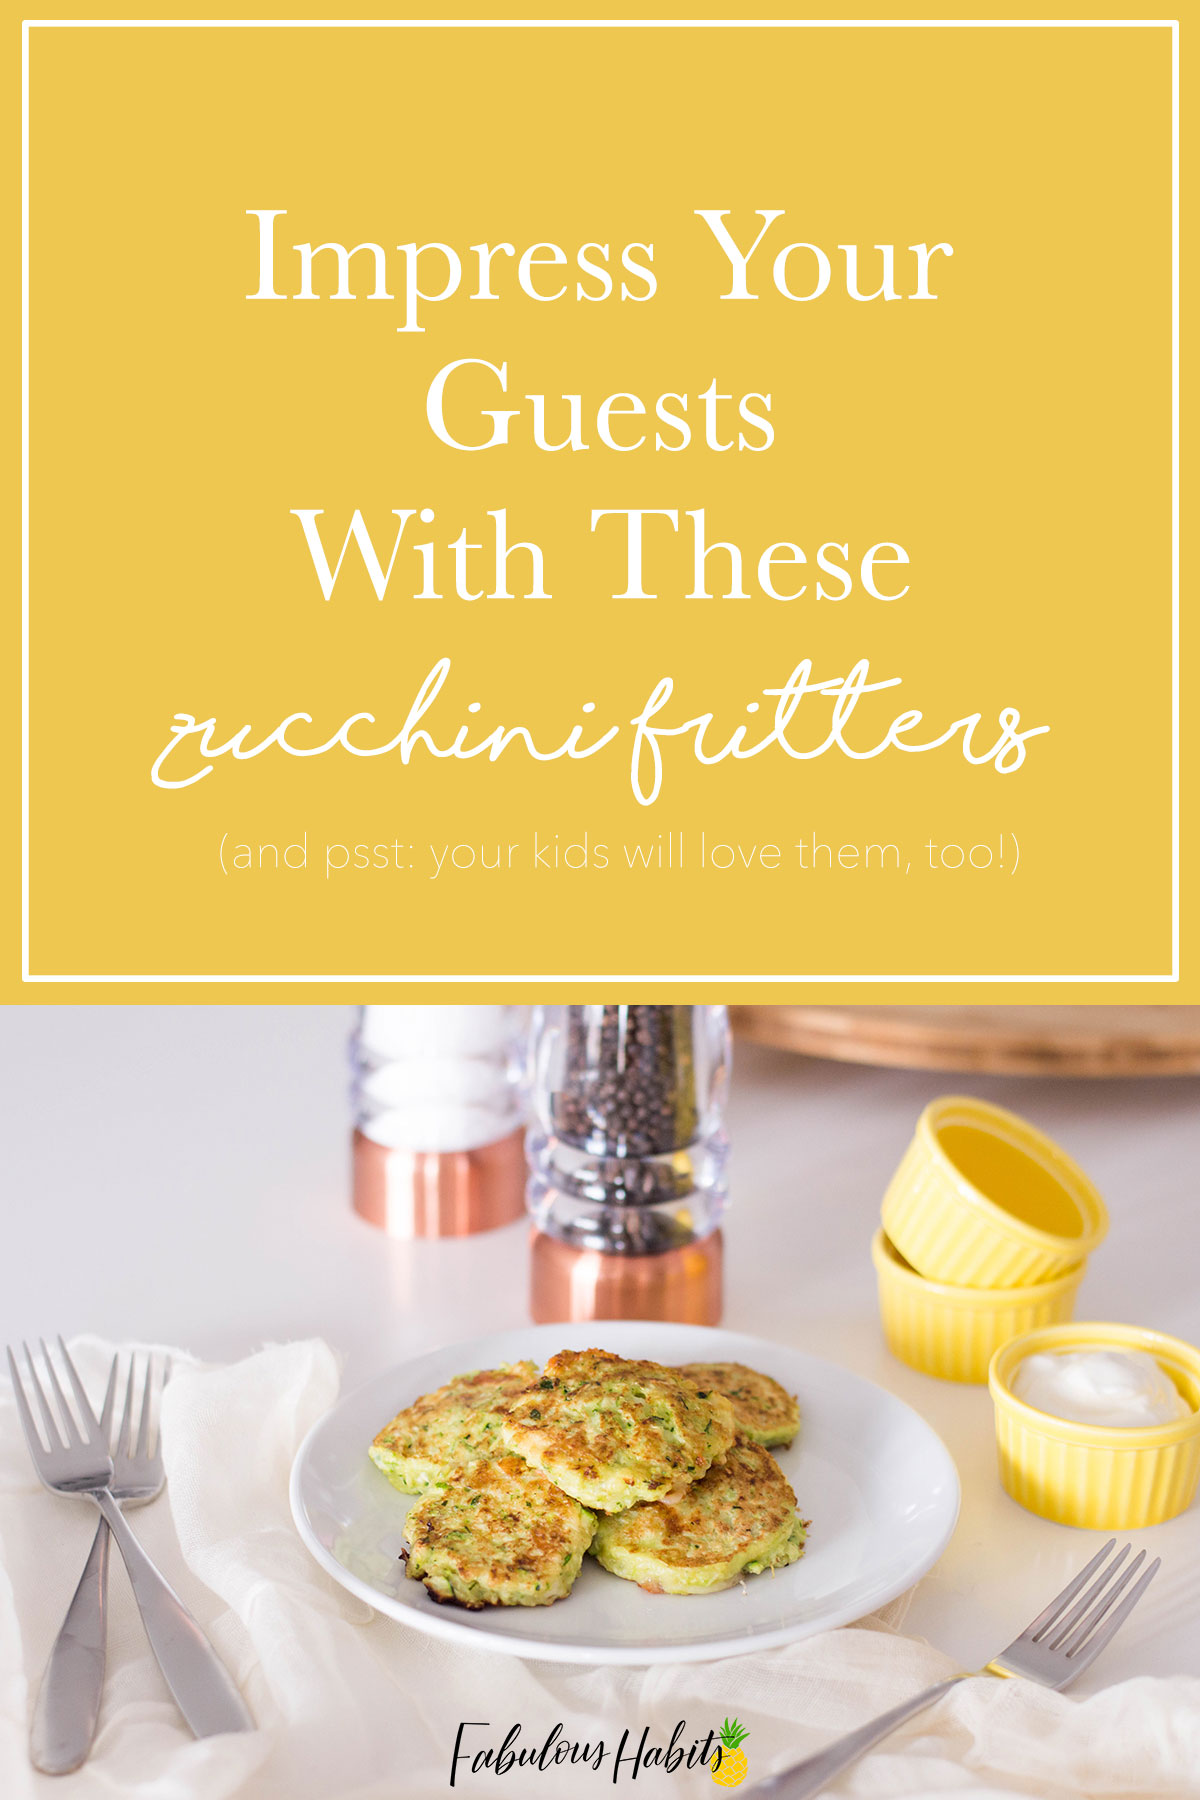 Your guests will be so impressed with these zucchini fritters. They're easy to make and boast amazing flavor! Get the recipe of Fabulous Habits and our detailed step-by-step instructions! #zucchinirecipes